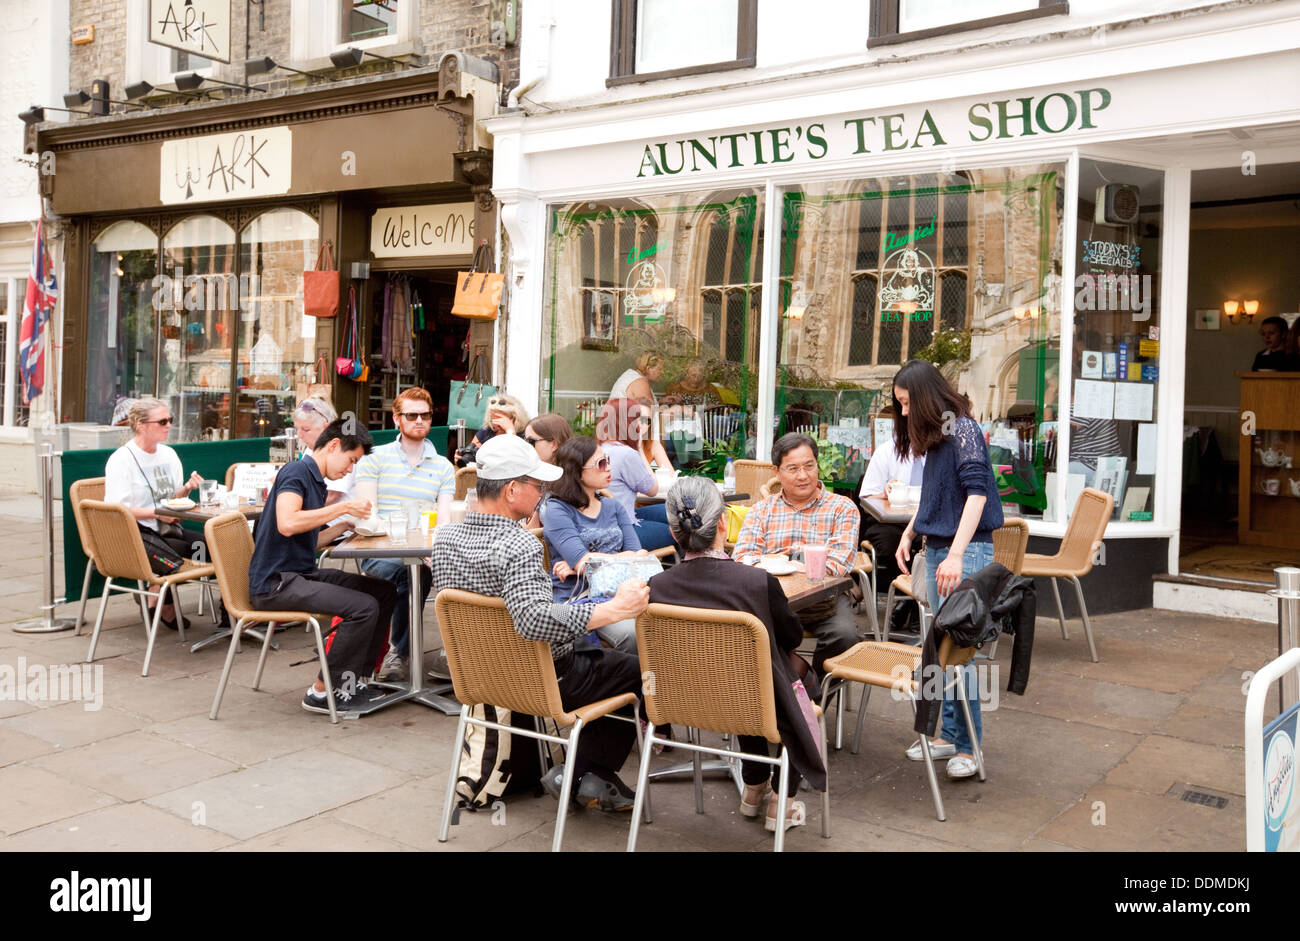 Aunties Tea Shop, with people drinking and sitting outside in summer, St Marys Passage, Cambridge city centre,  UK - Stock Image